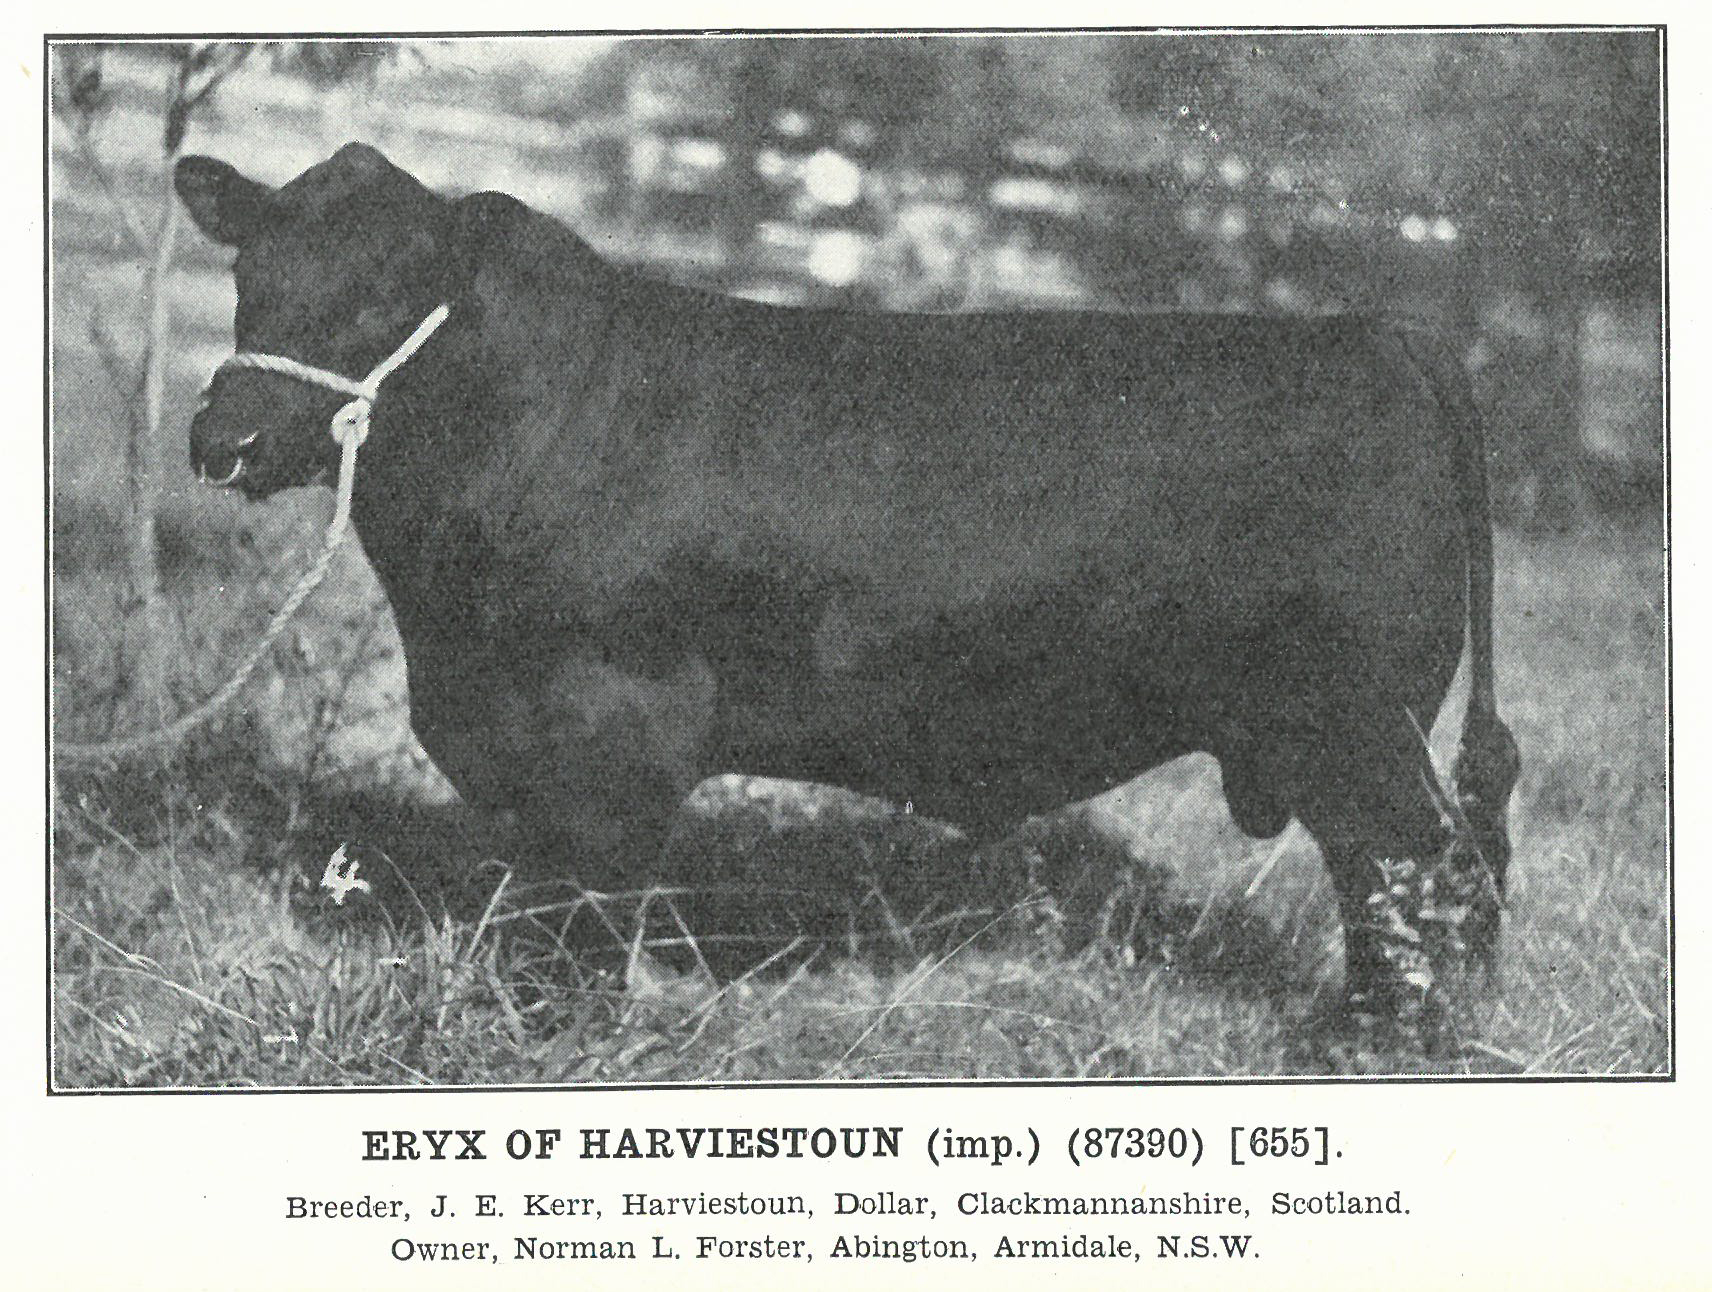 Eryx of Harviestoun